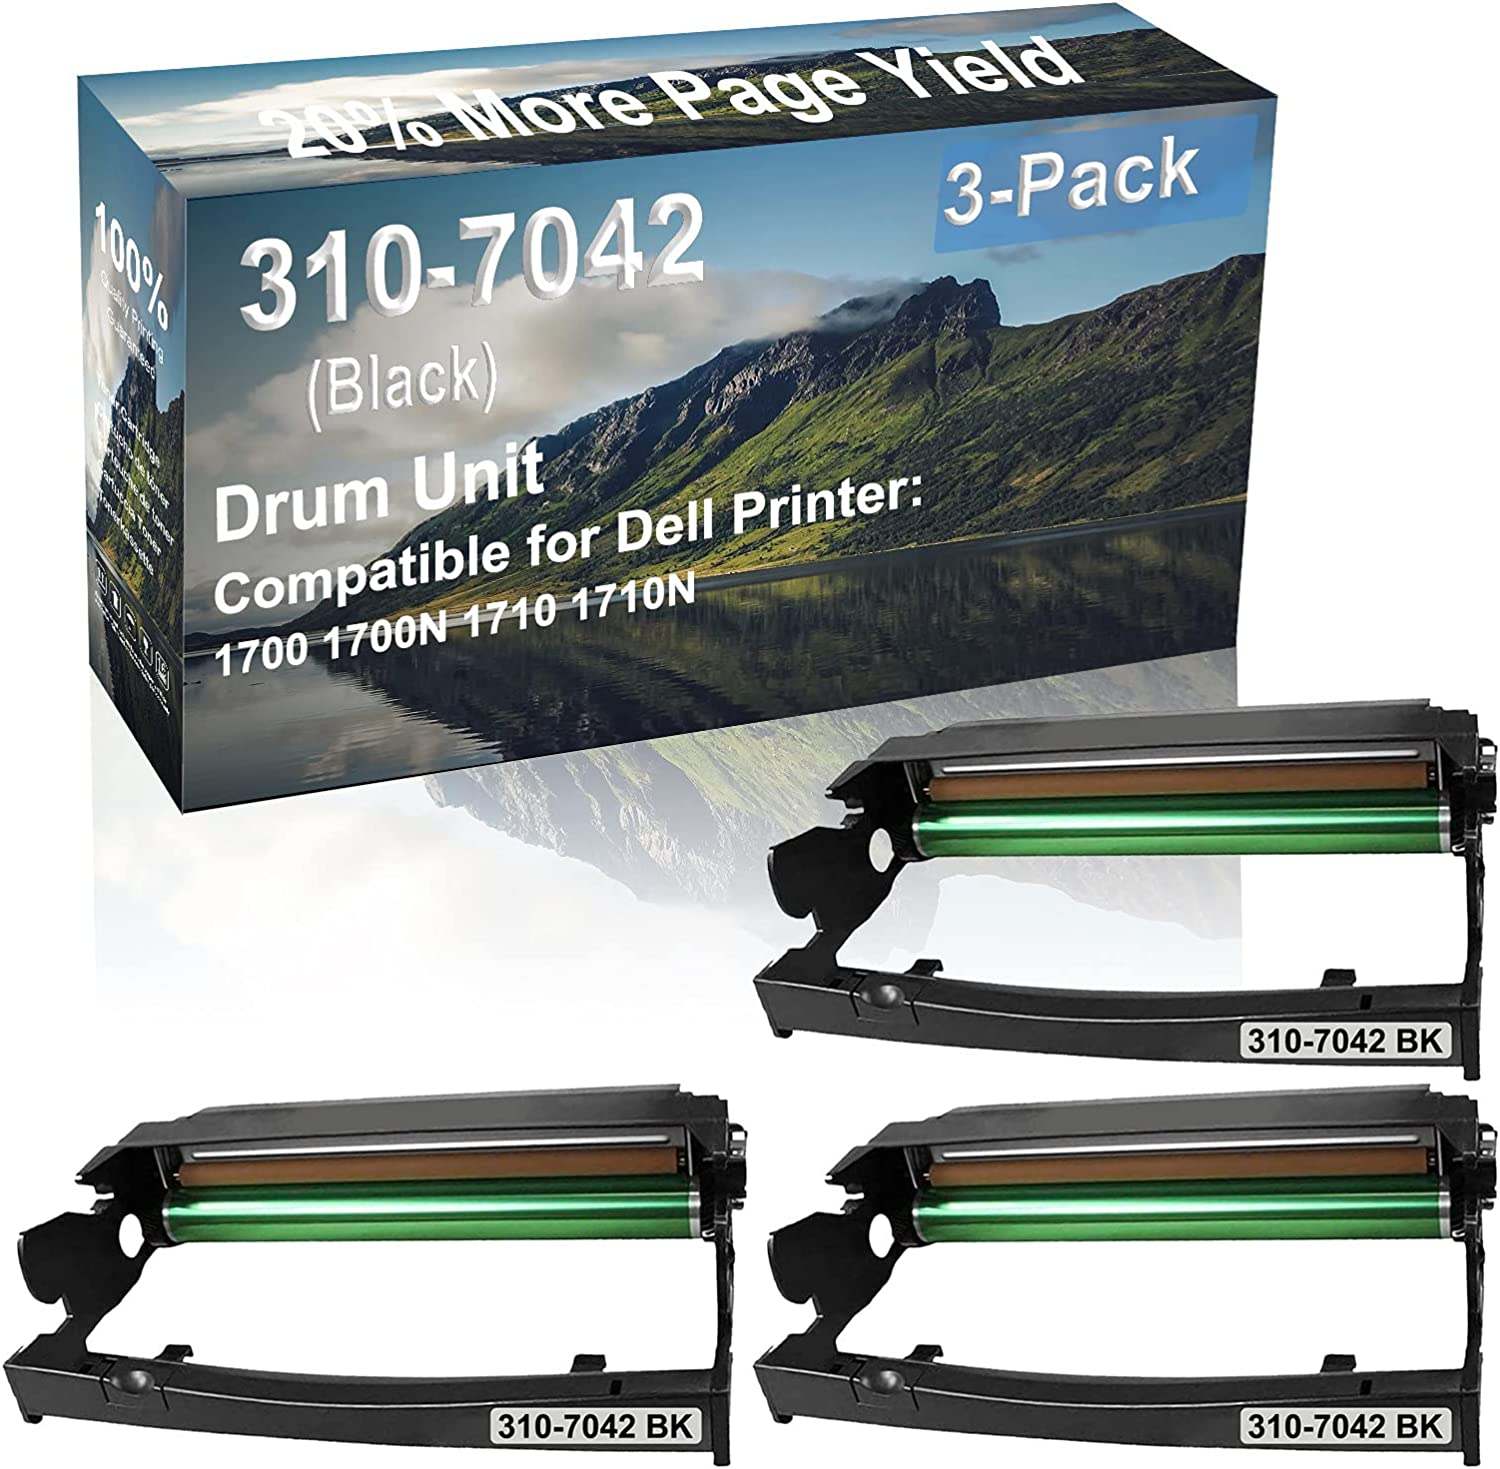 3-Pack (Black) Compatible 1700 1700N 1710 1710N Printer Drum Unit Replacement for Dell 310-7042 Drum Kit